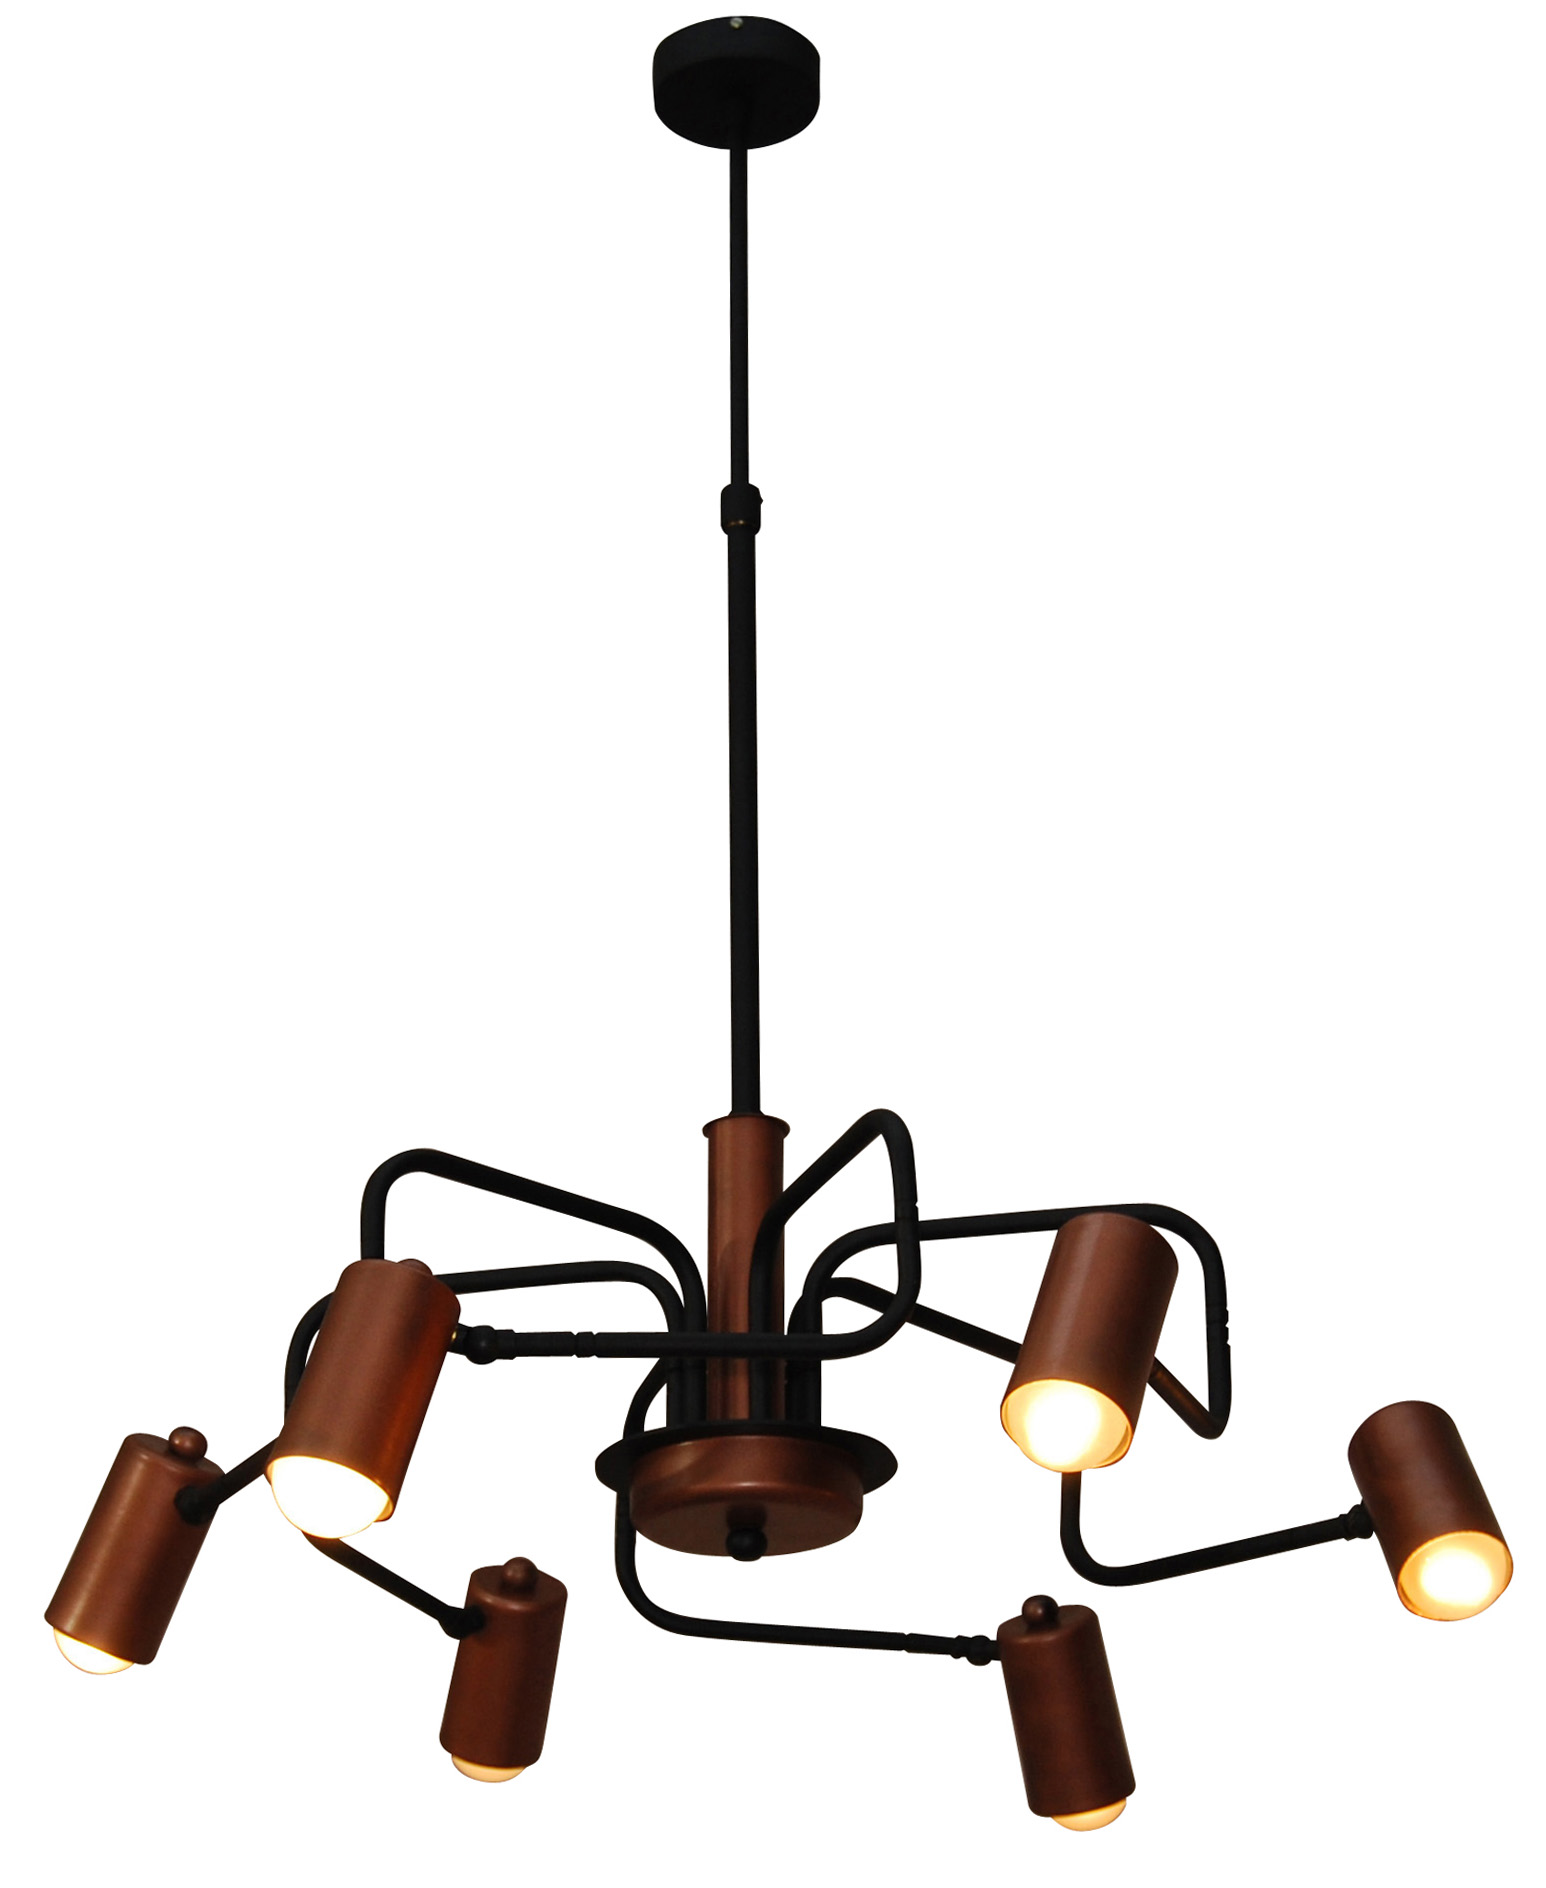 HL-3522-6 HANNAH OLD COPPER & BLACK PENDANT + ΔΩΡΟ ΛΑΜΠΤΗΡΕΣ ΑΞΙΑΣ 20€